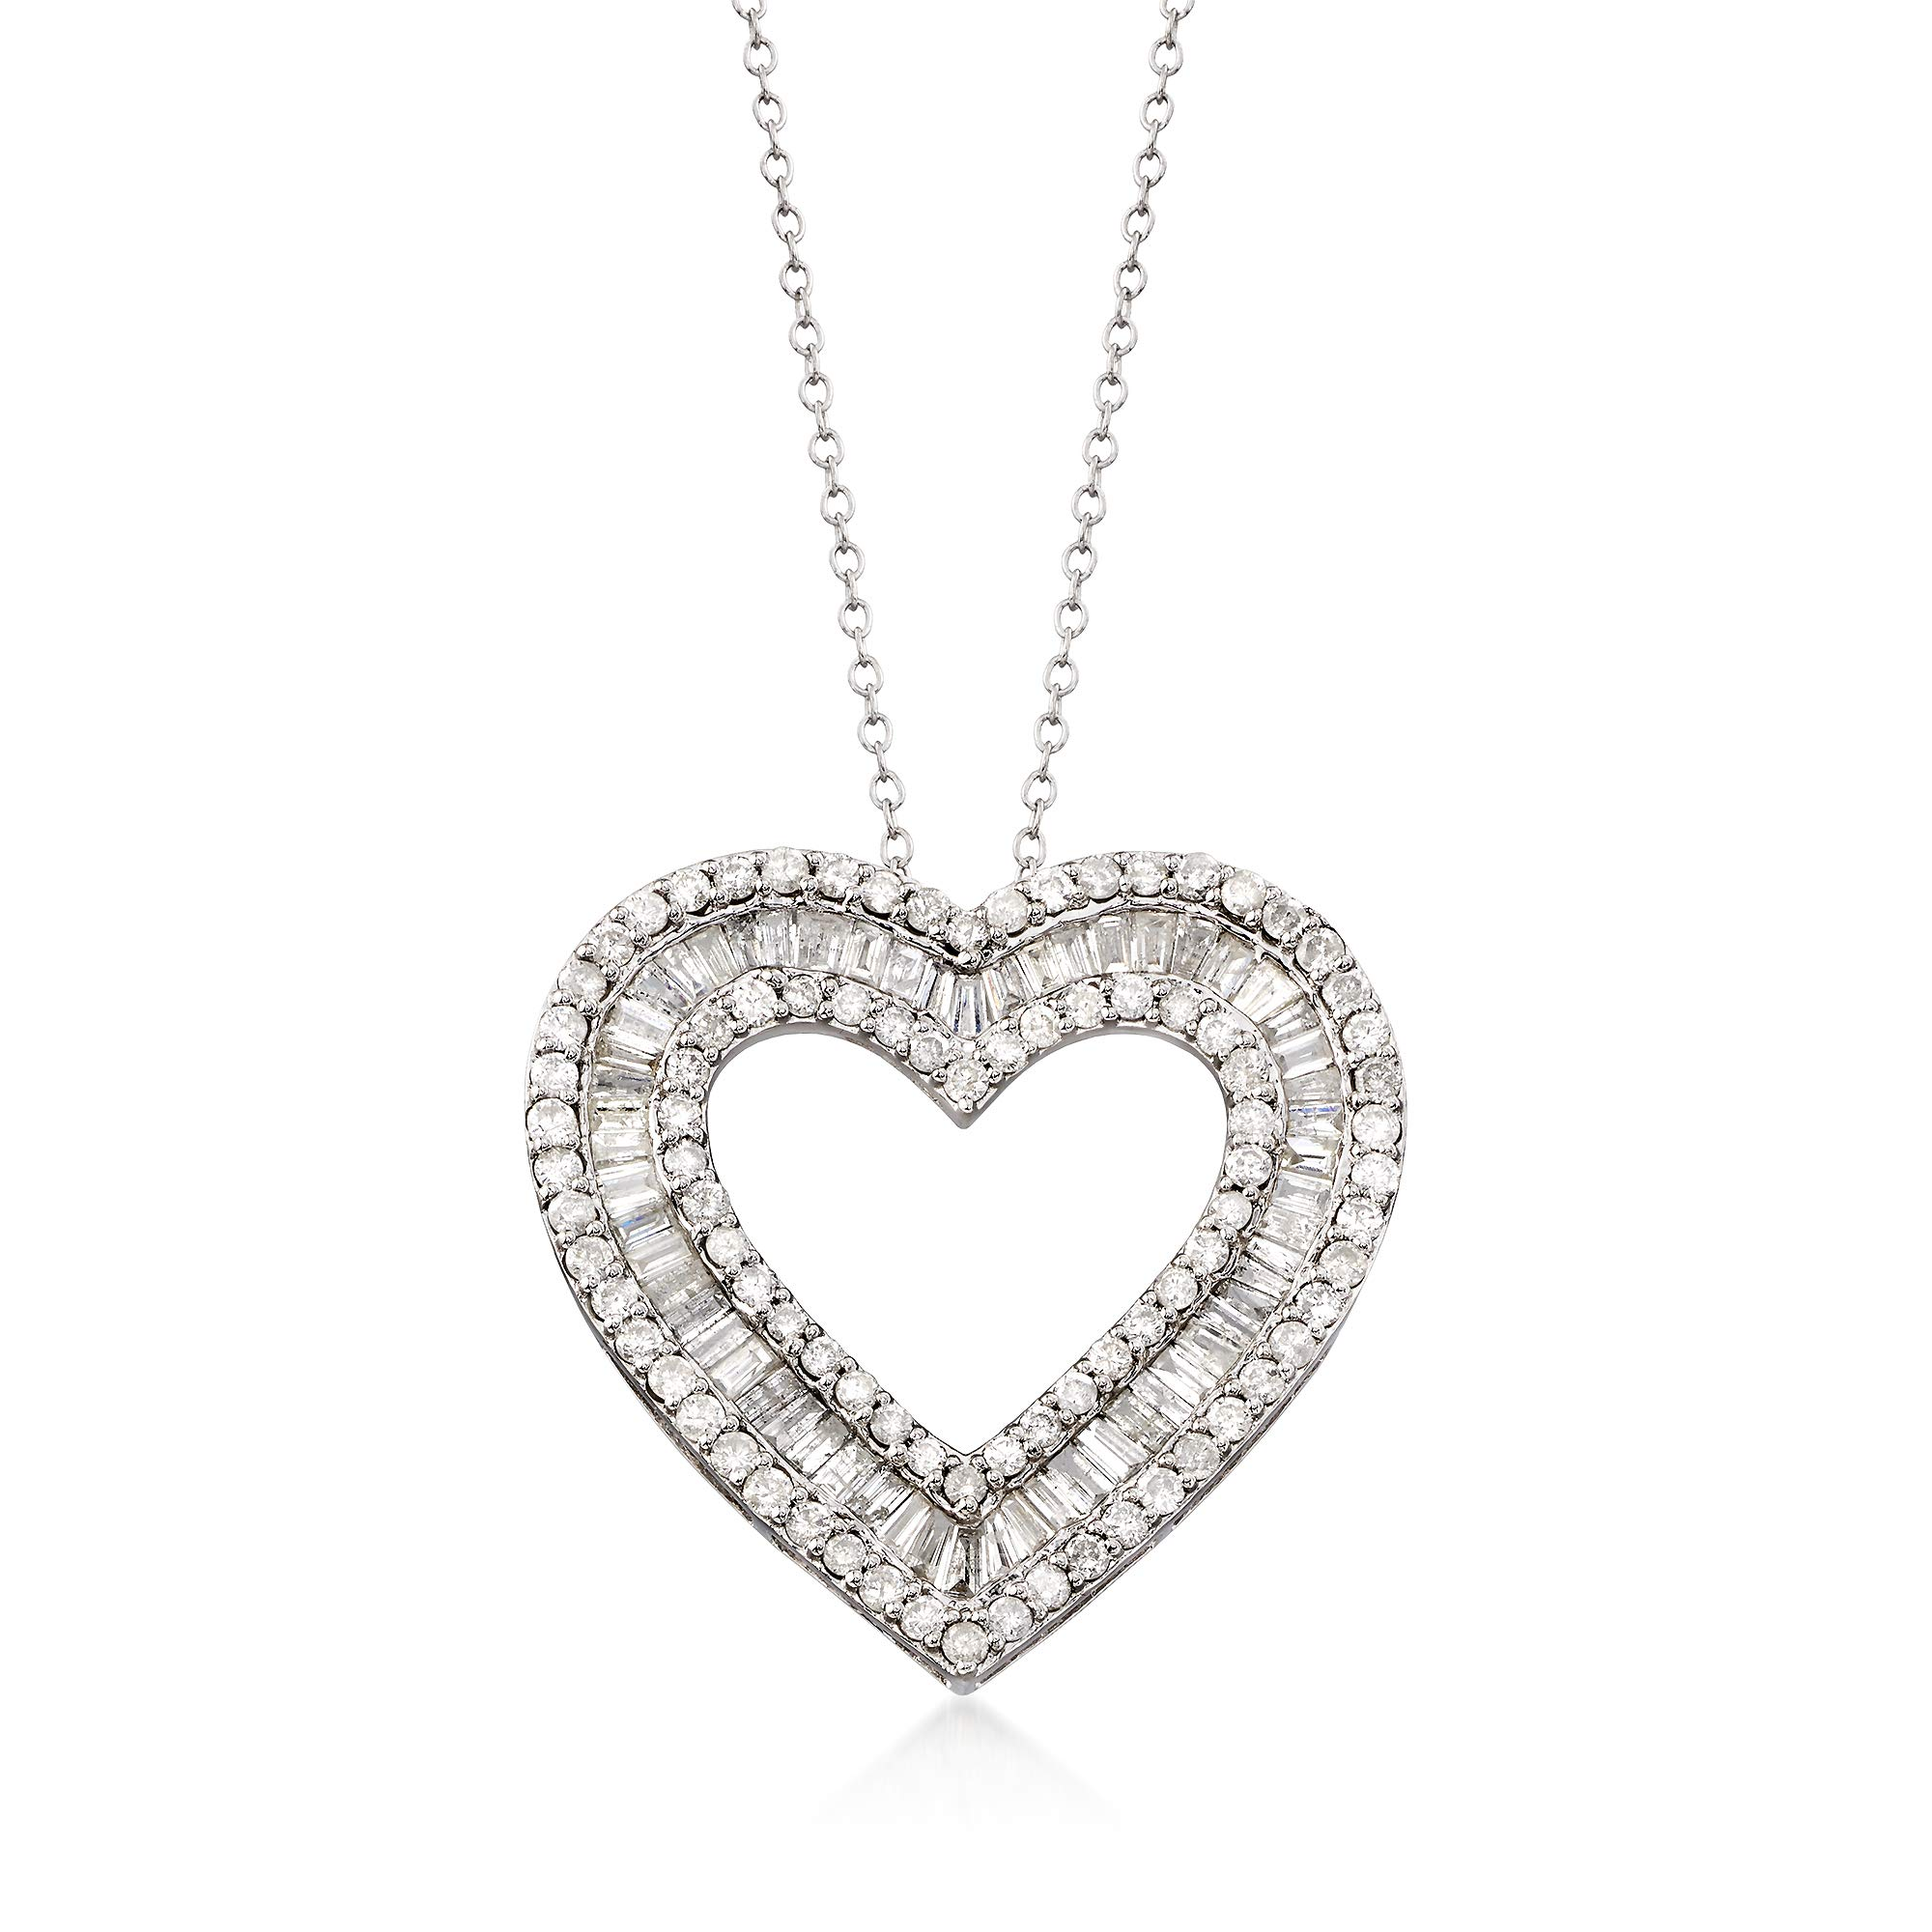 Ross-Simons 3.00 ct. t.w. Diamond Heart Pendant Necklace in Sterling Silver